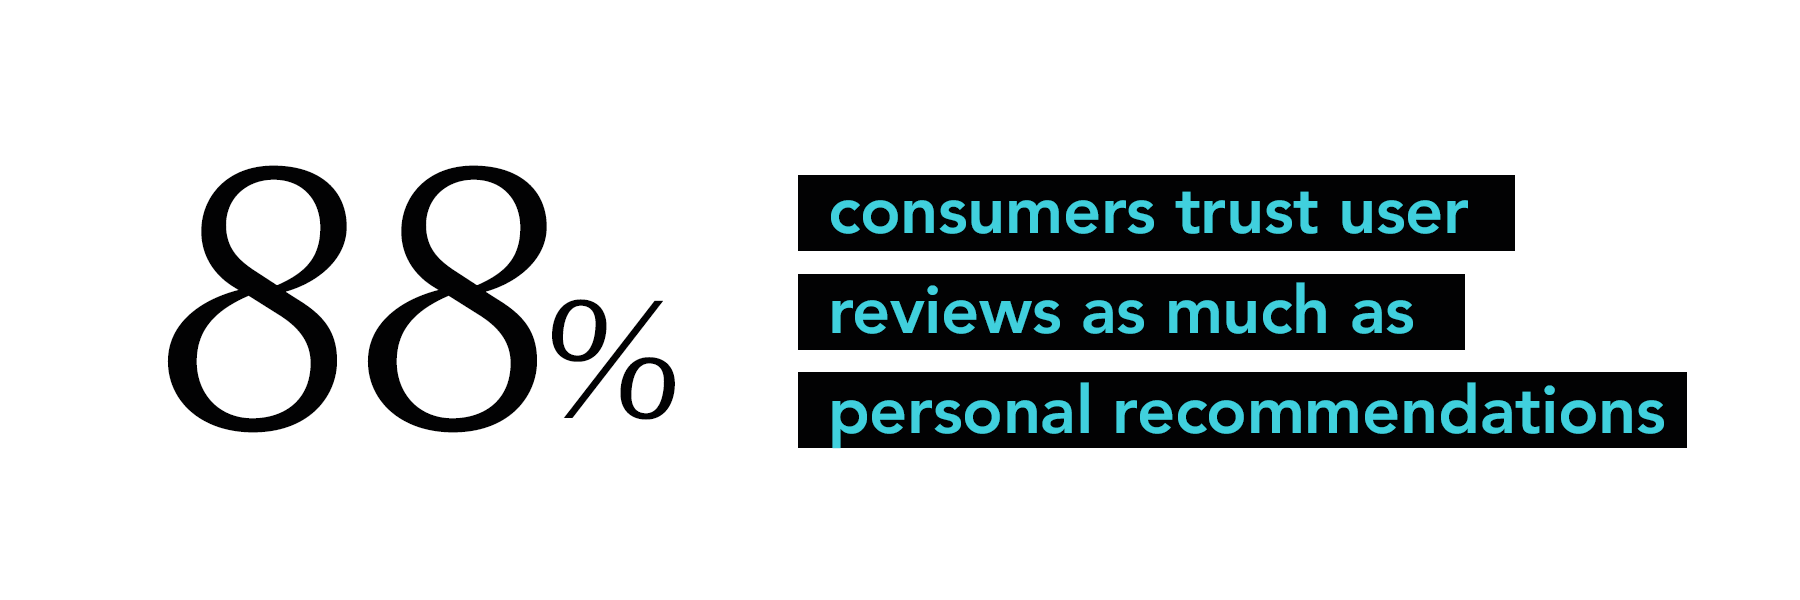 88% consumers trust user reviews as much as personal recommendations